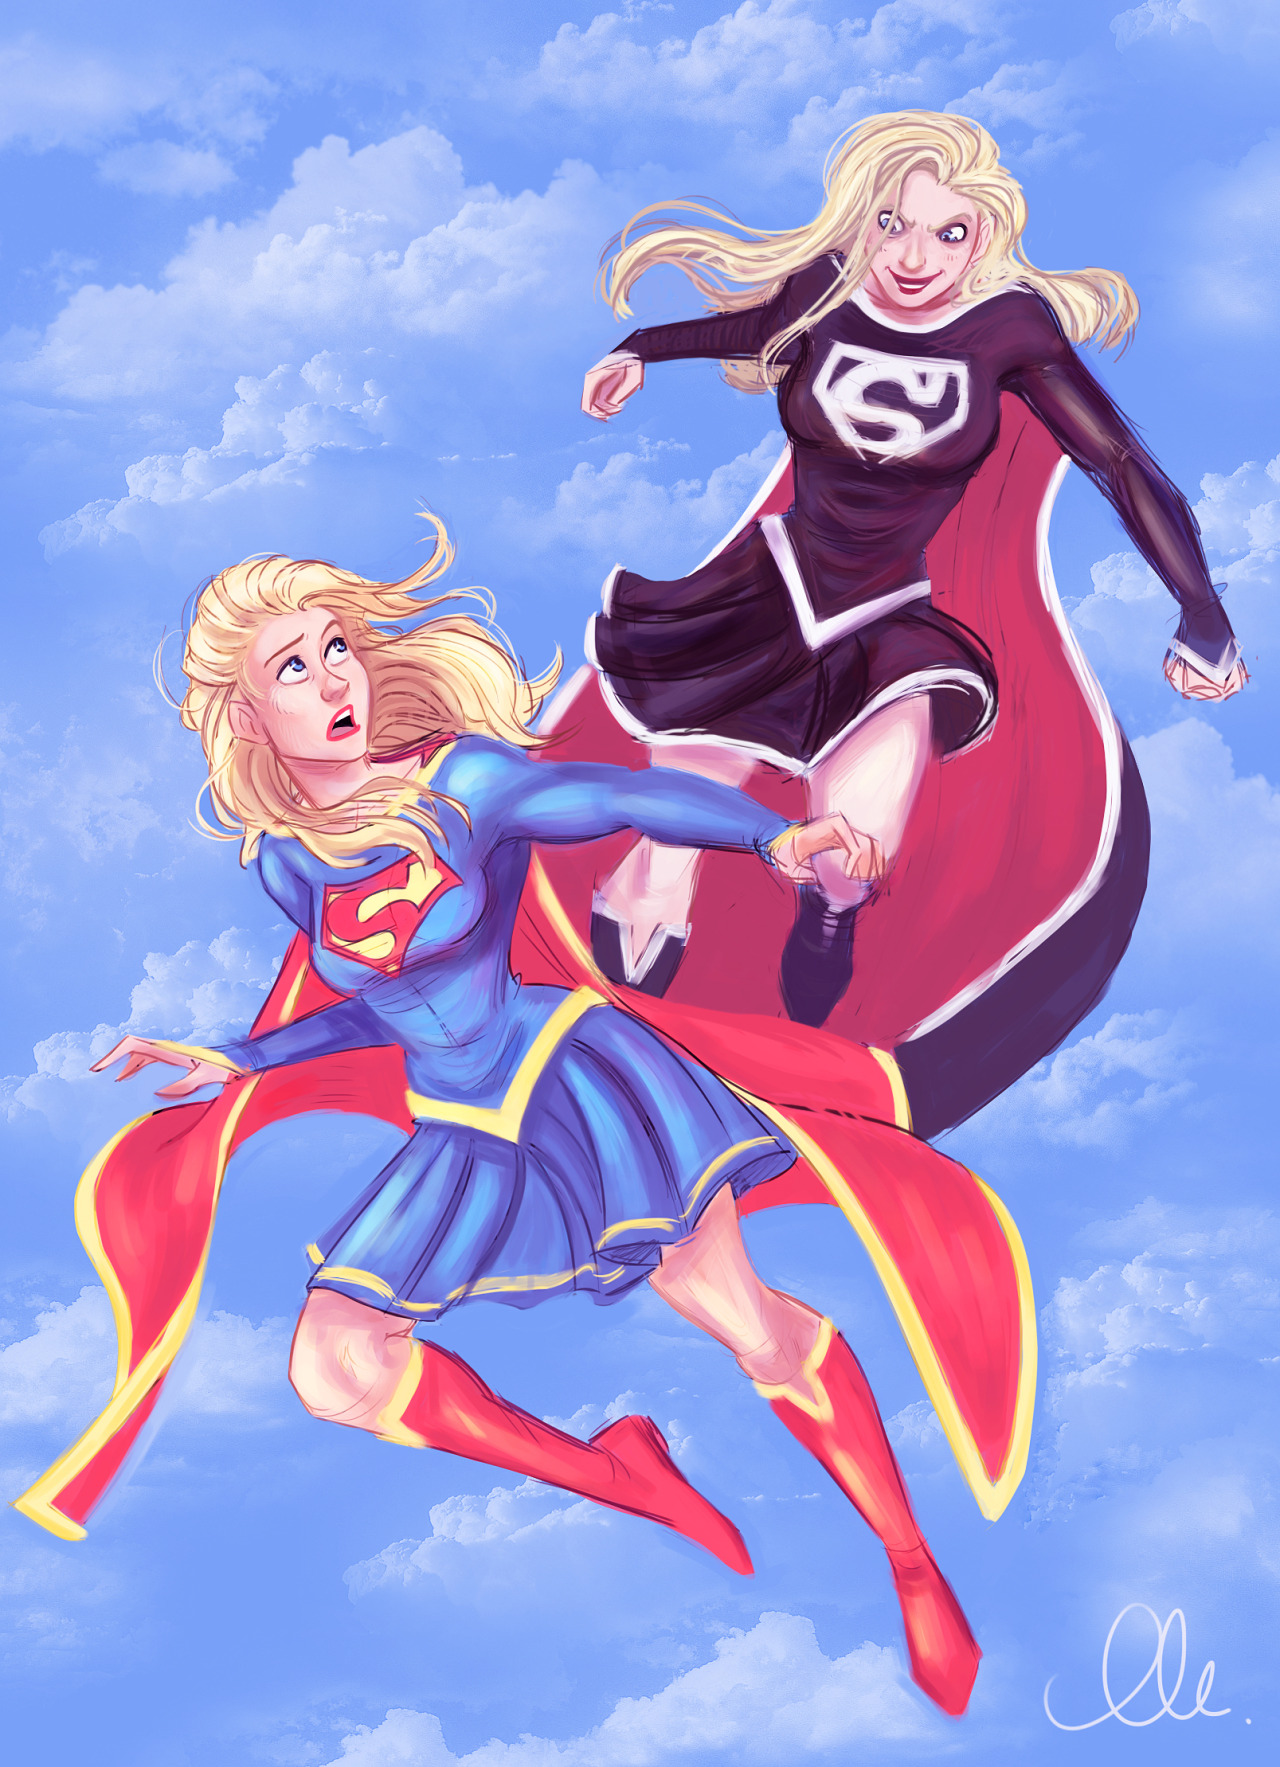 eschergirls:   thatmadgray submitted:   I did a redraw of thissupergirlimage. :)   Very nice. :)   The image this one is based on will be in a mini-essay/lesson thing I'm doing about legs soon, so pay attention to this, it'll come up again in this blog. Beautiful redraw!